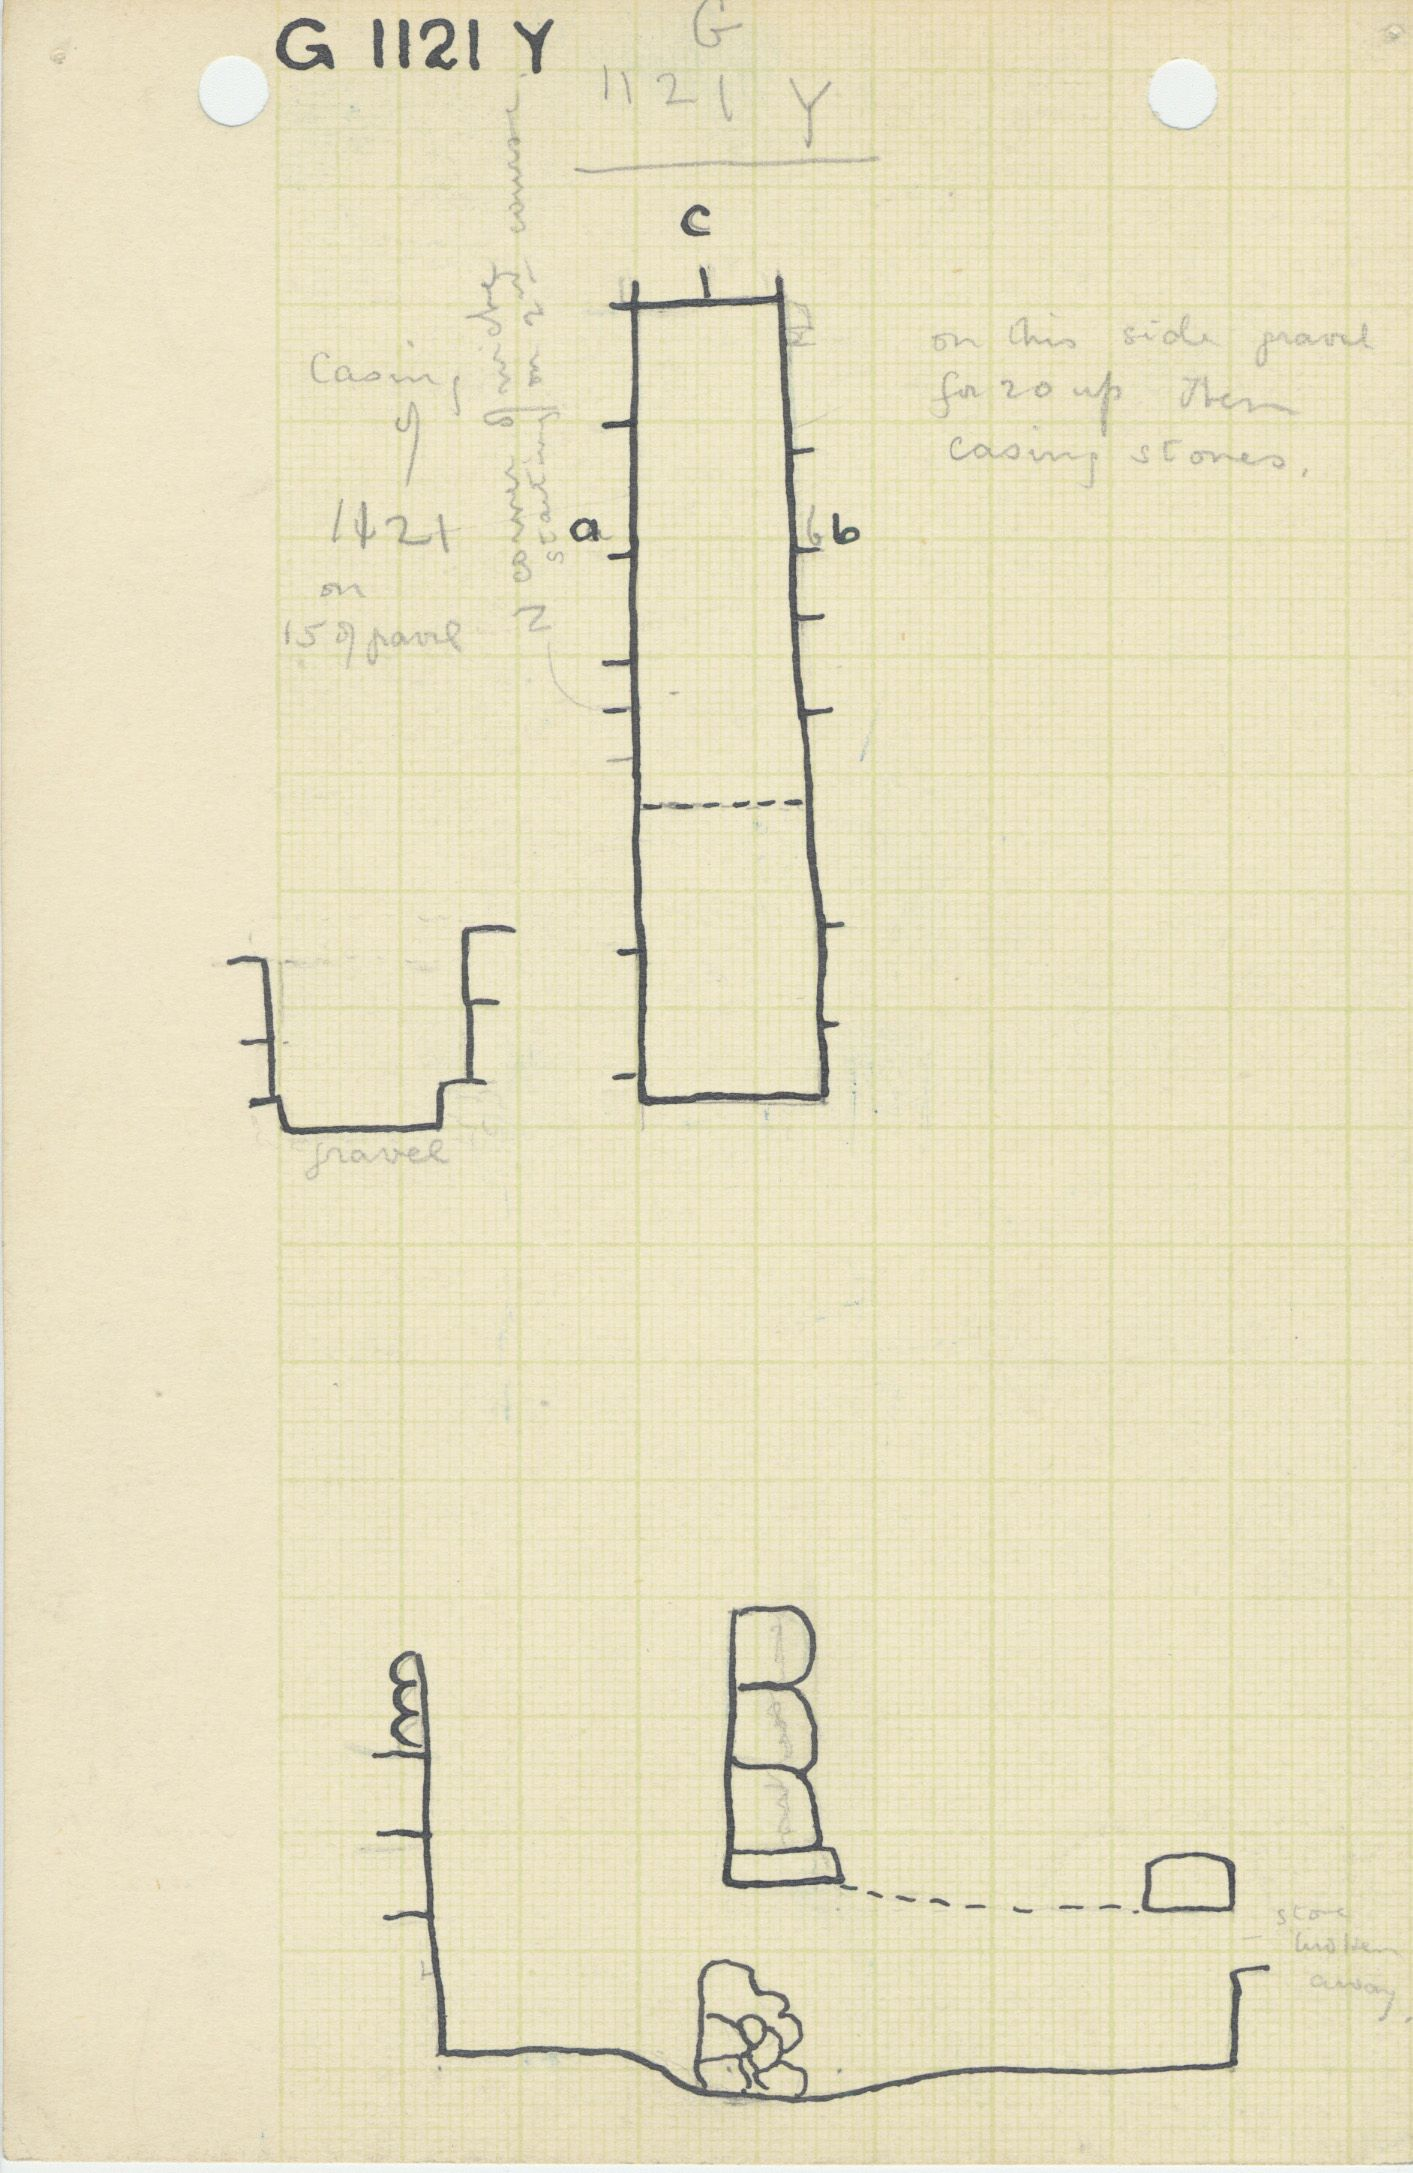 Maps and plans: G 1121, Shaft Y